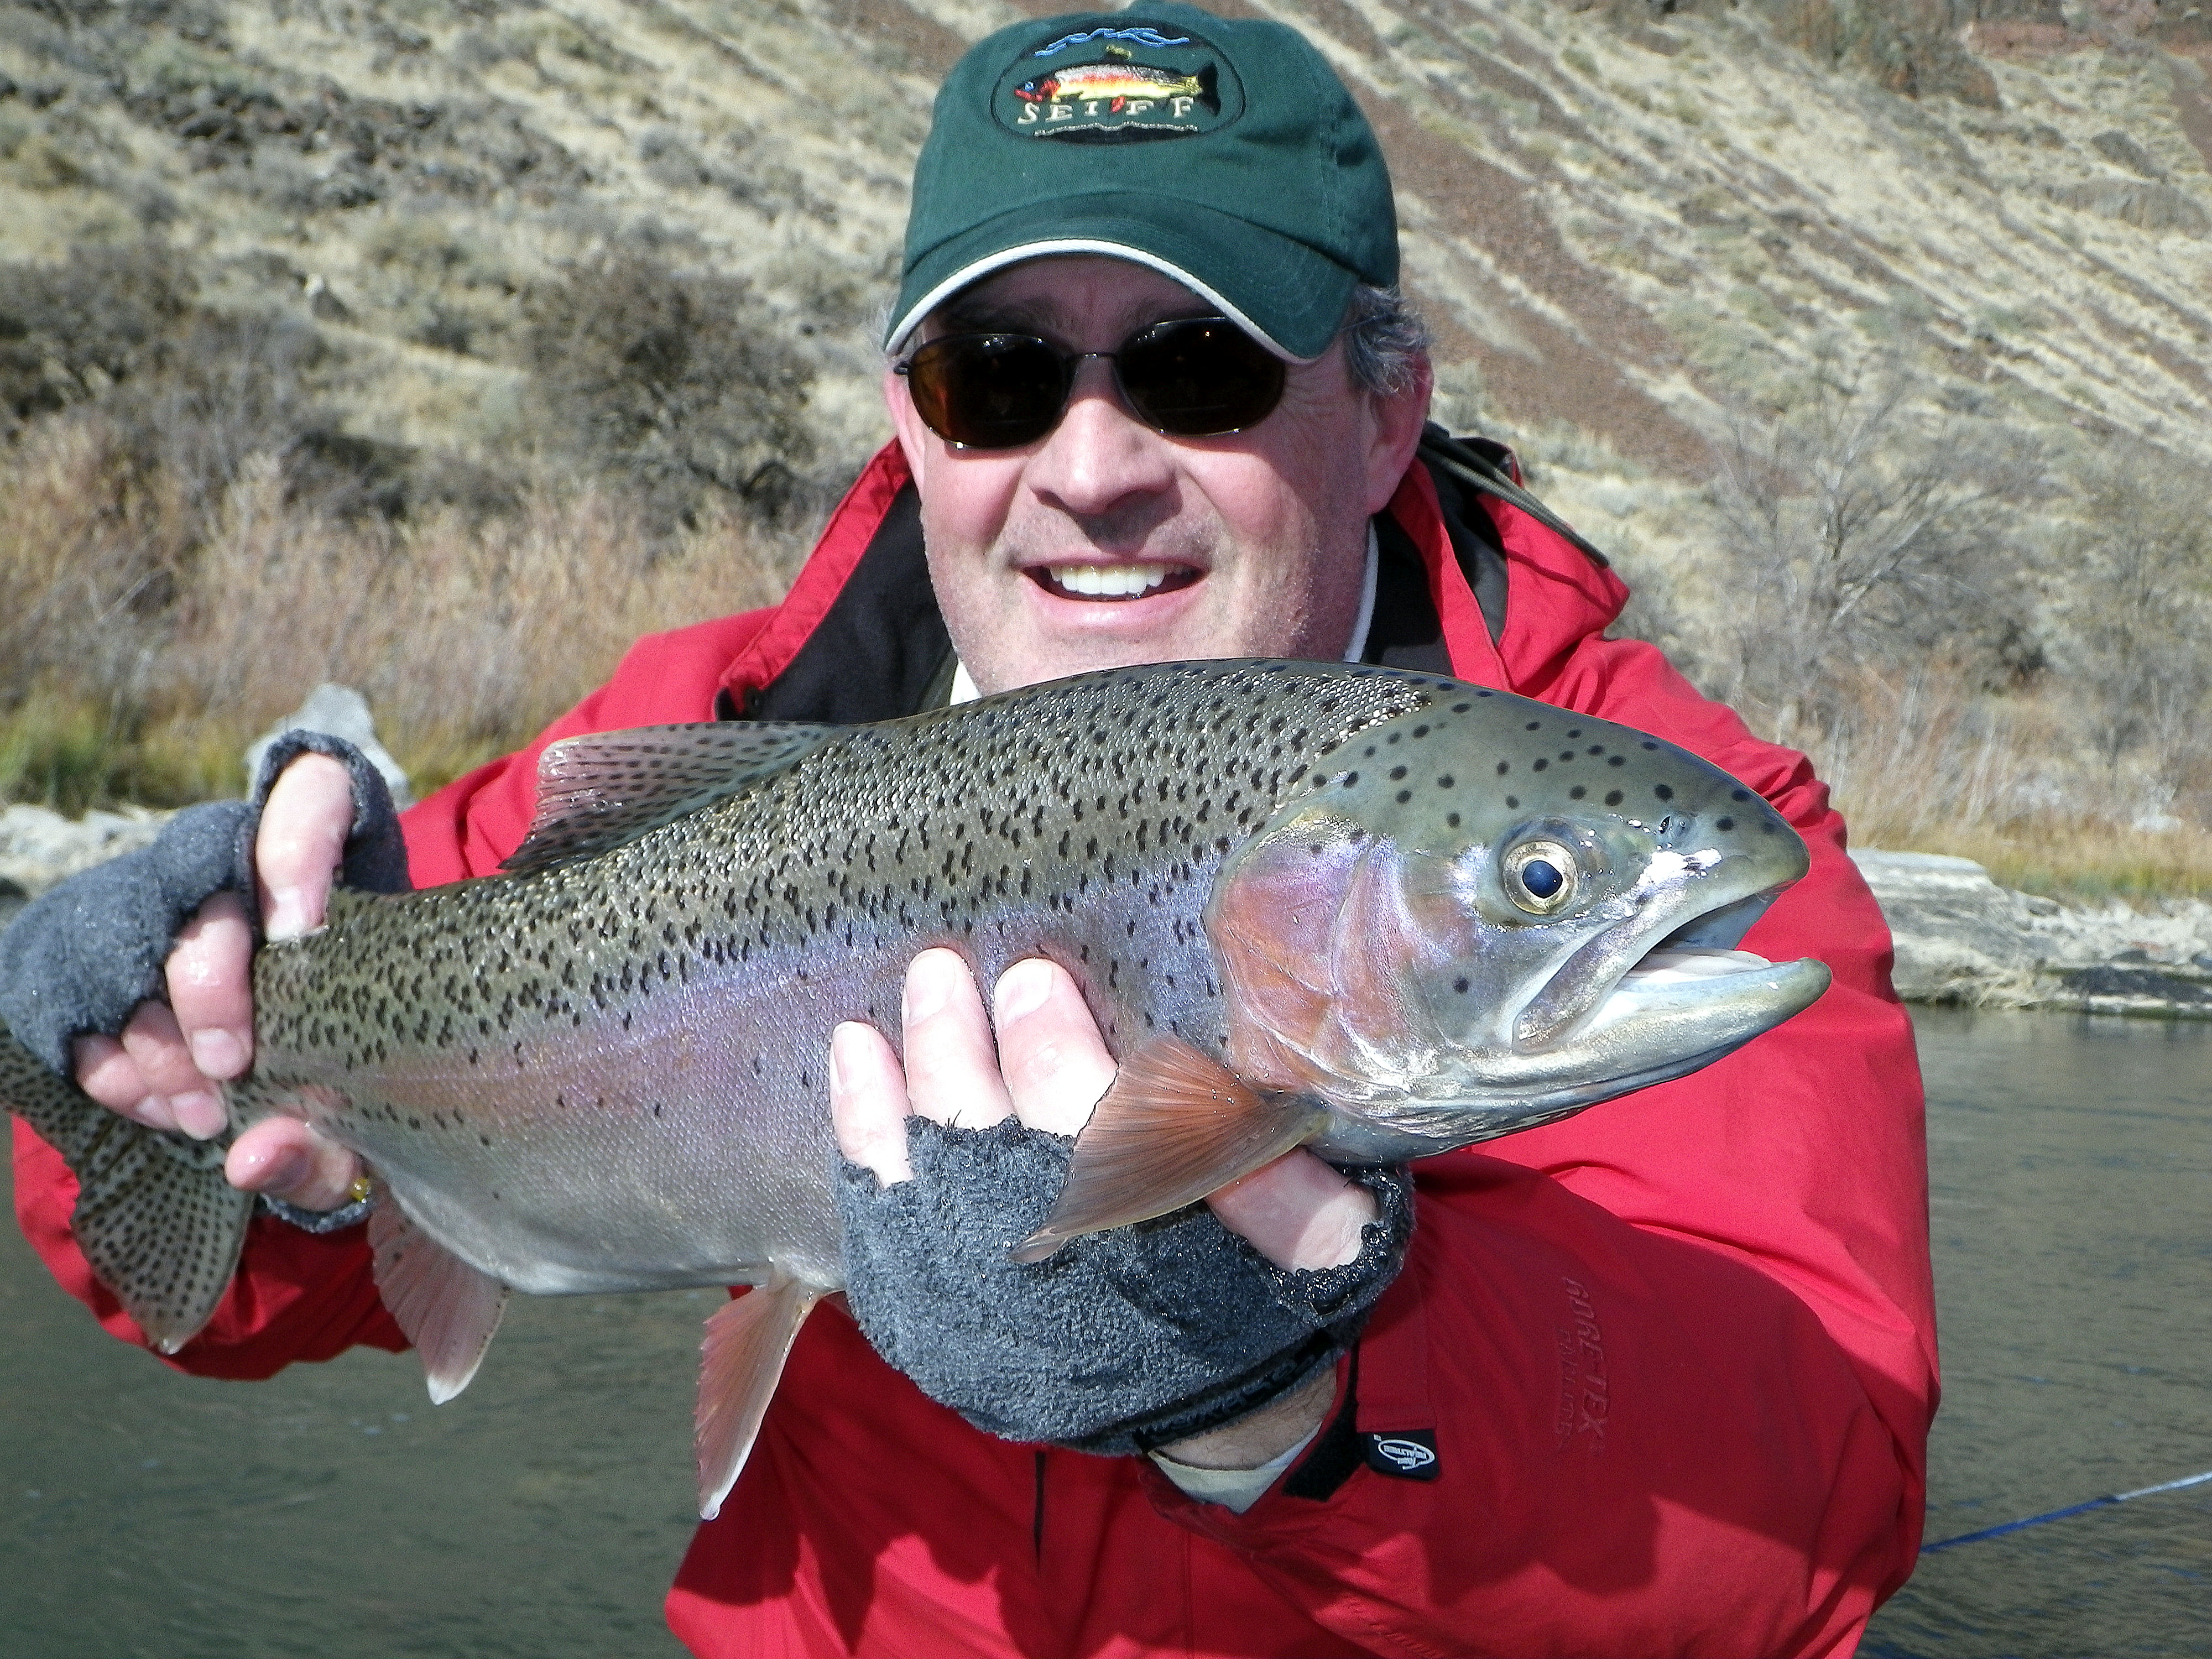 Lynnwood wa the fly fishing show autos post for Fly fishing shows